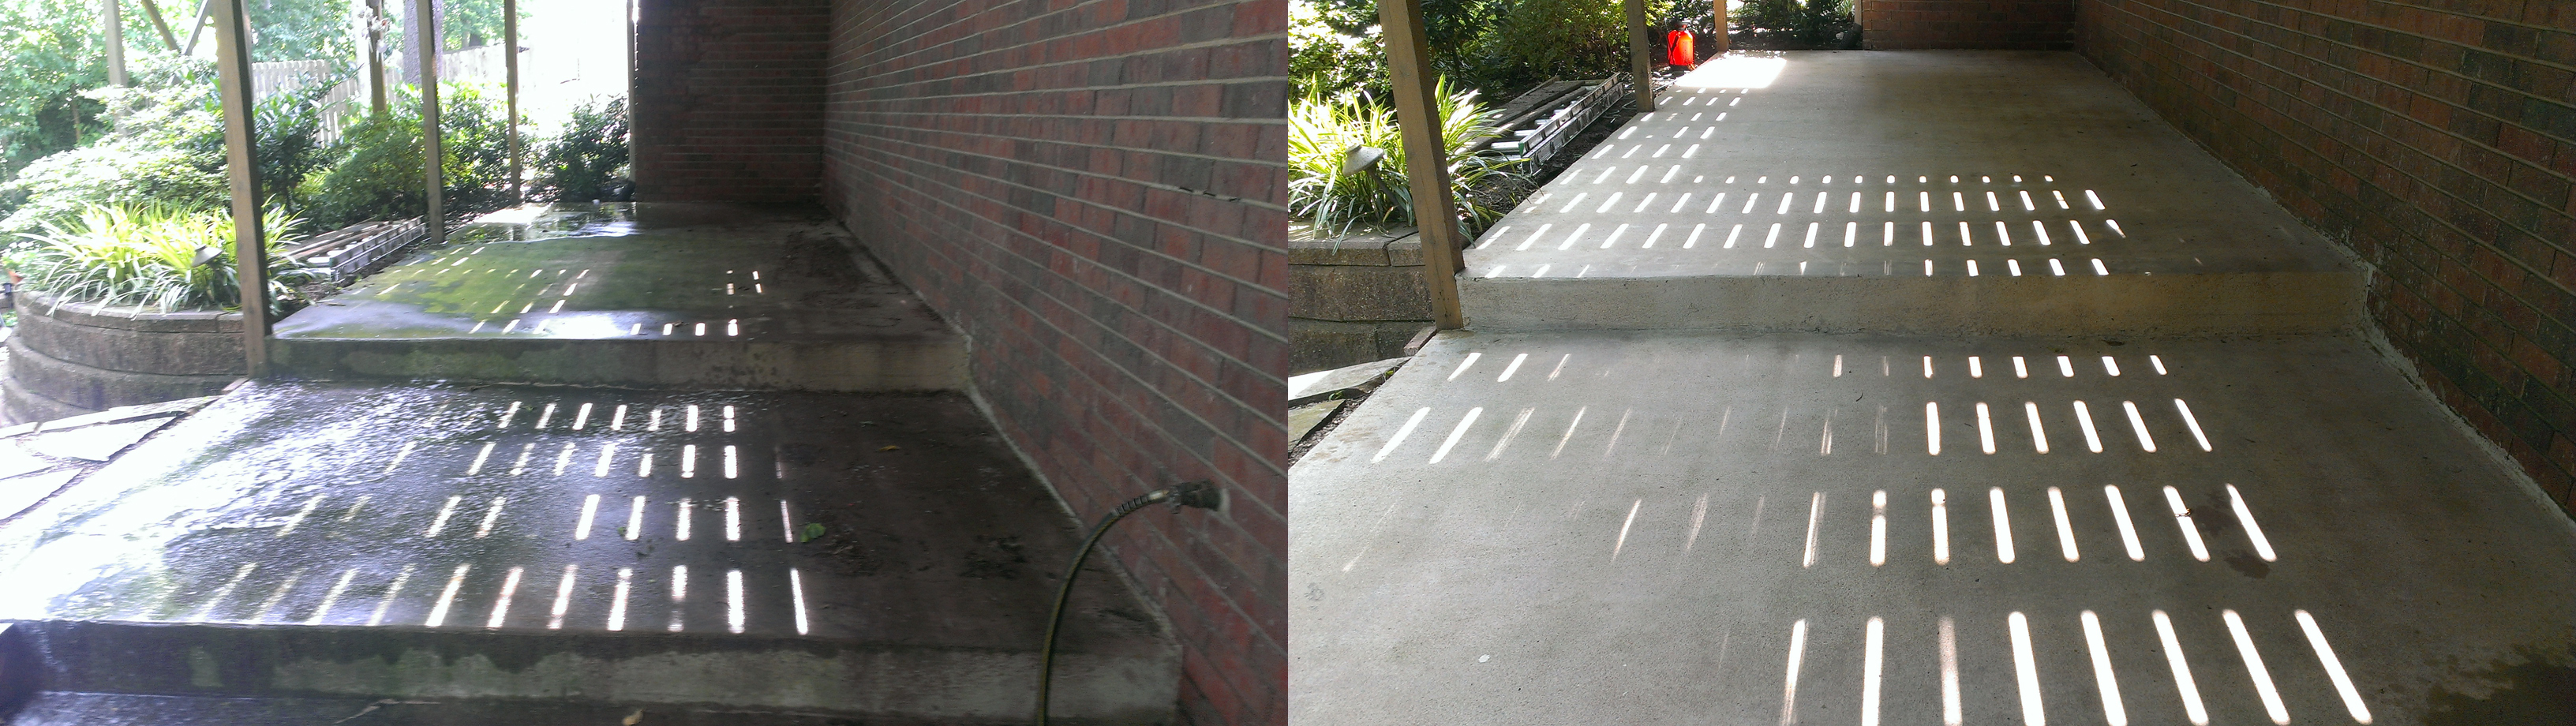 Concrete cleaning and sealing in Northwest Arkansas